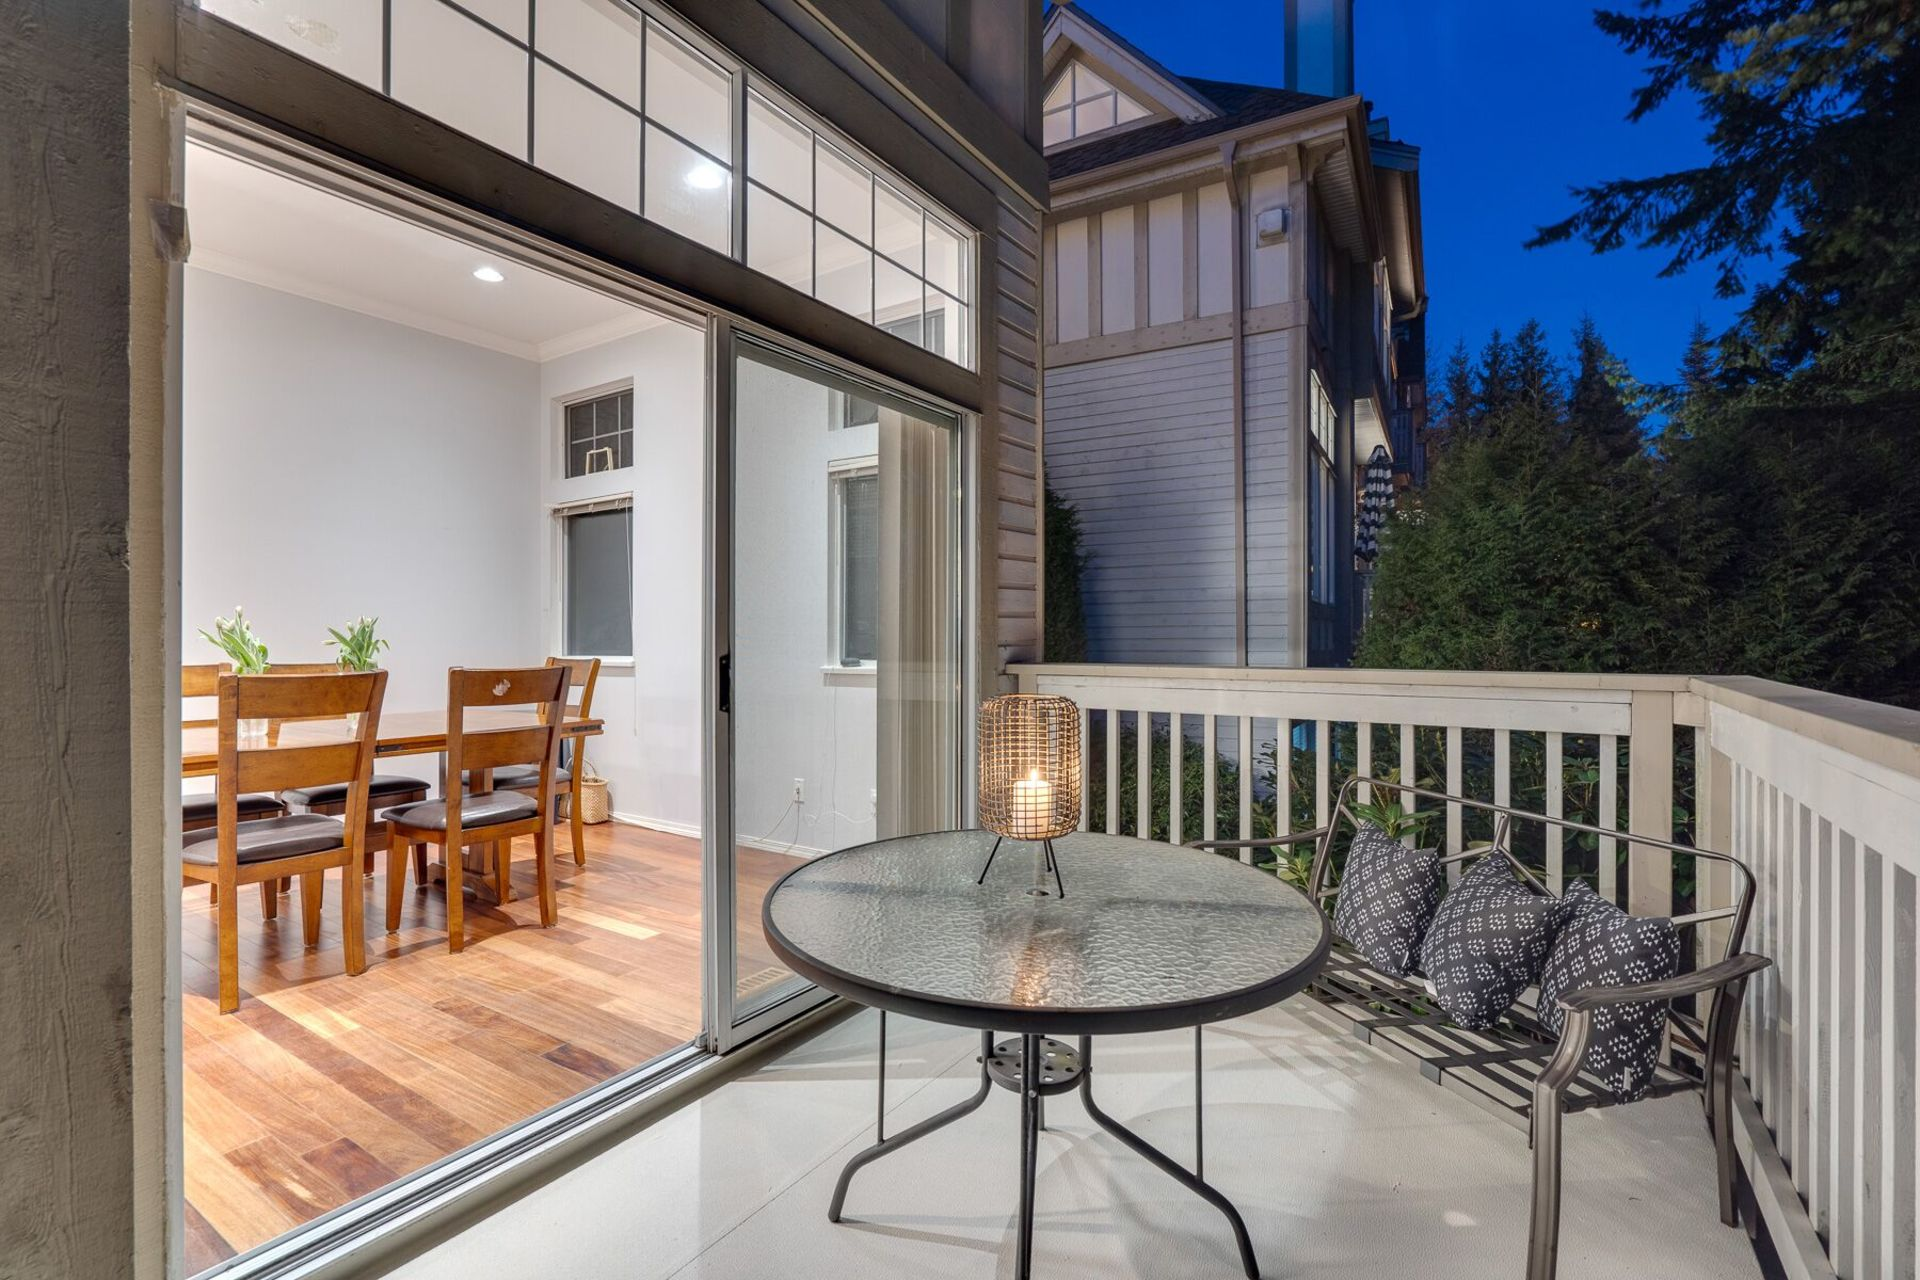 92gwre9g at 8 - 1 Aspenwood Drive, Heritage Woods PM, Port Moody